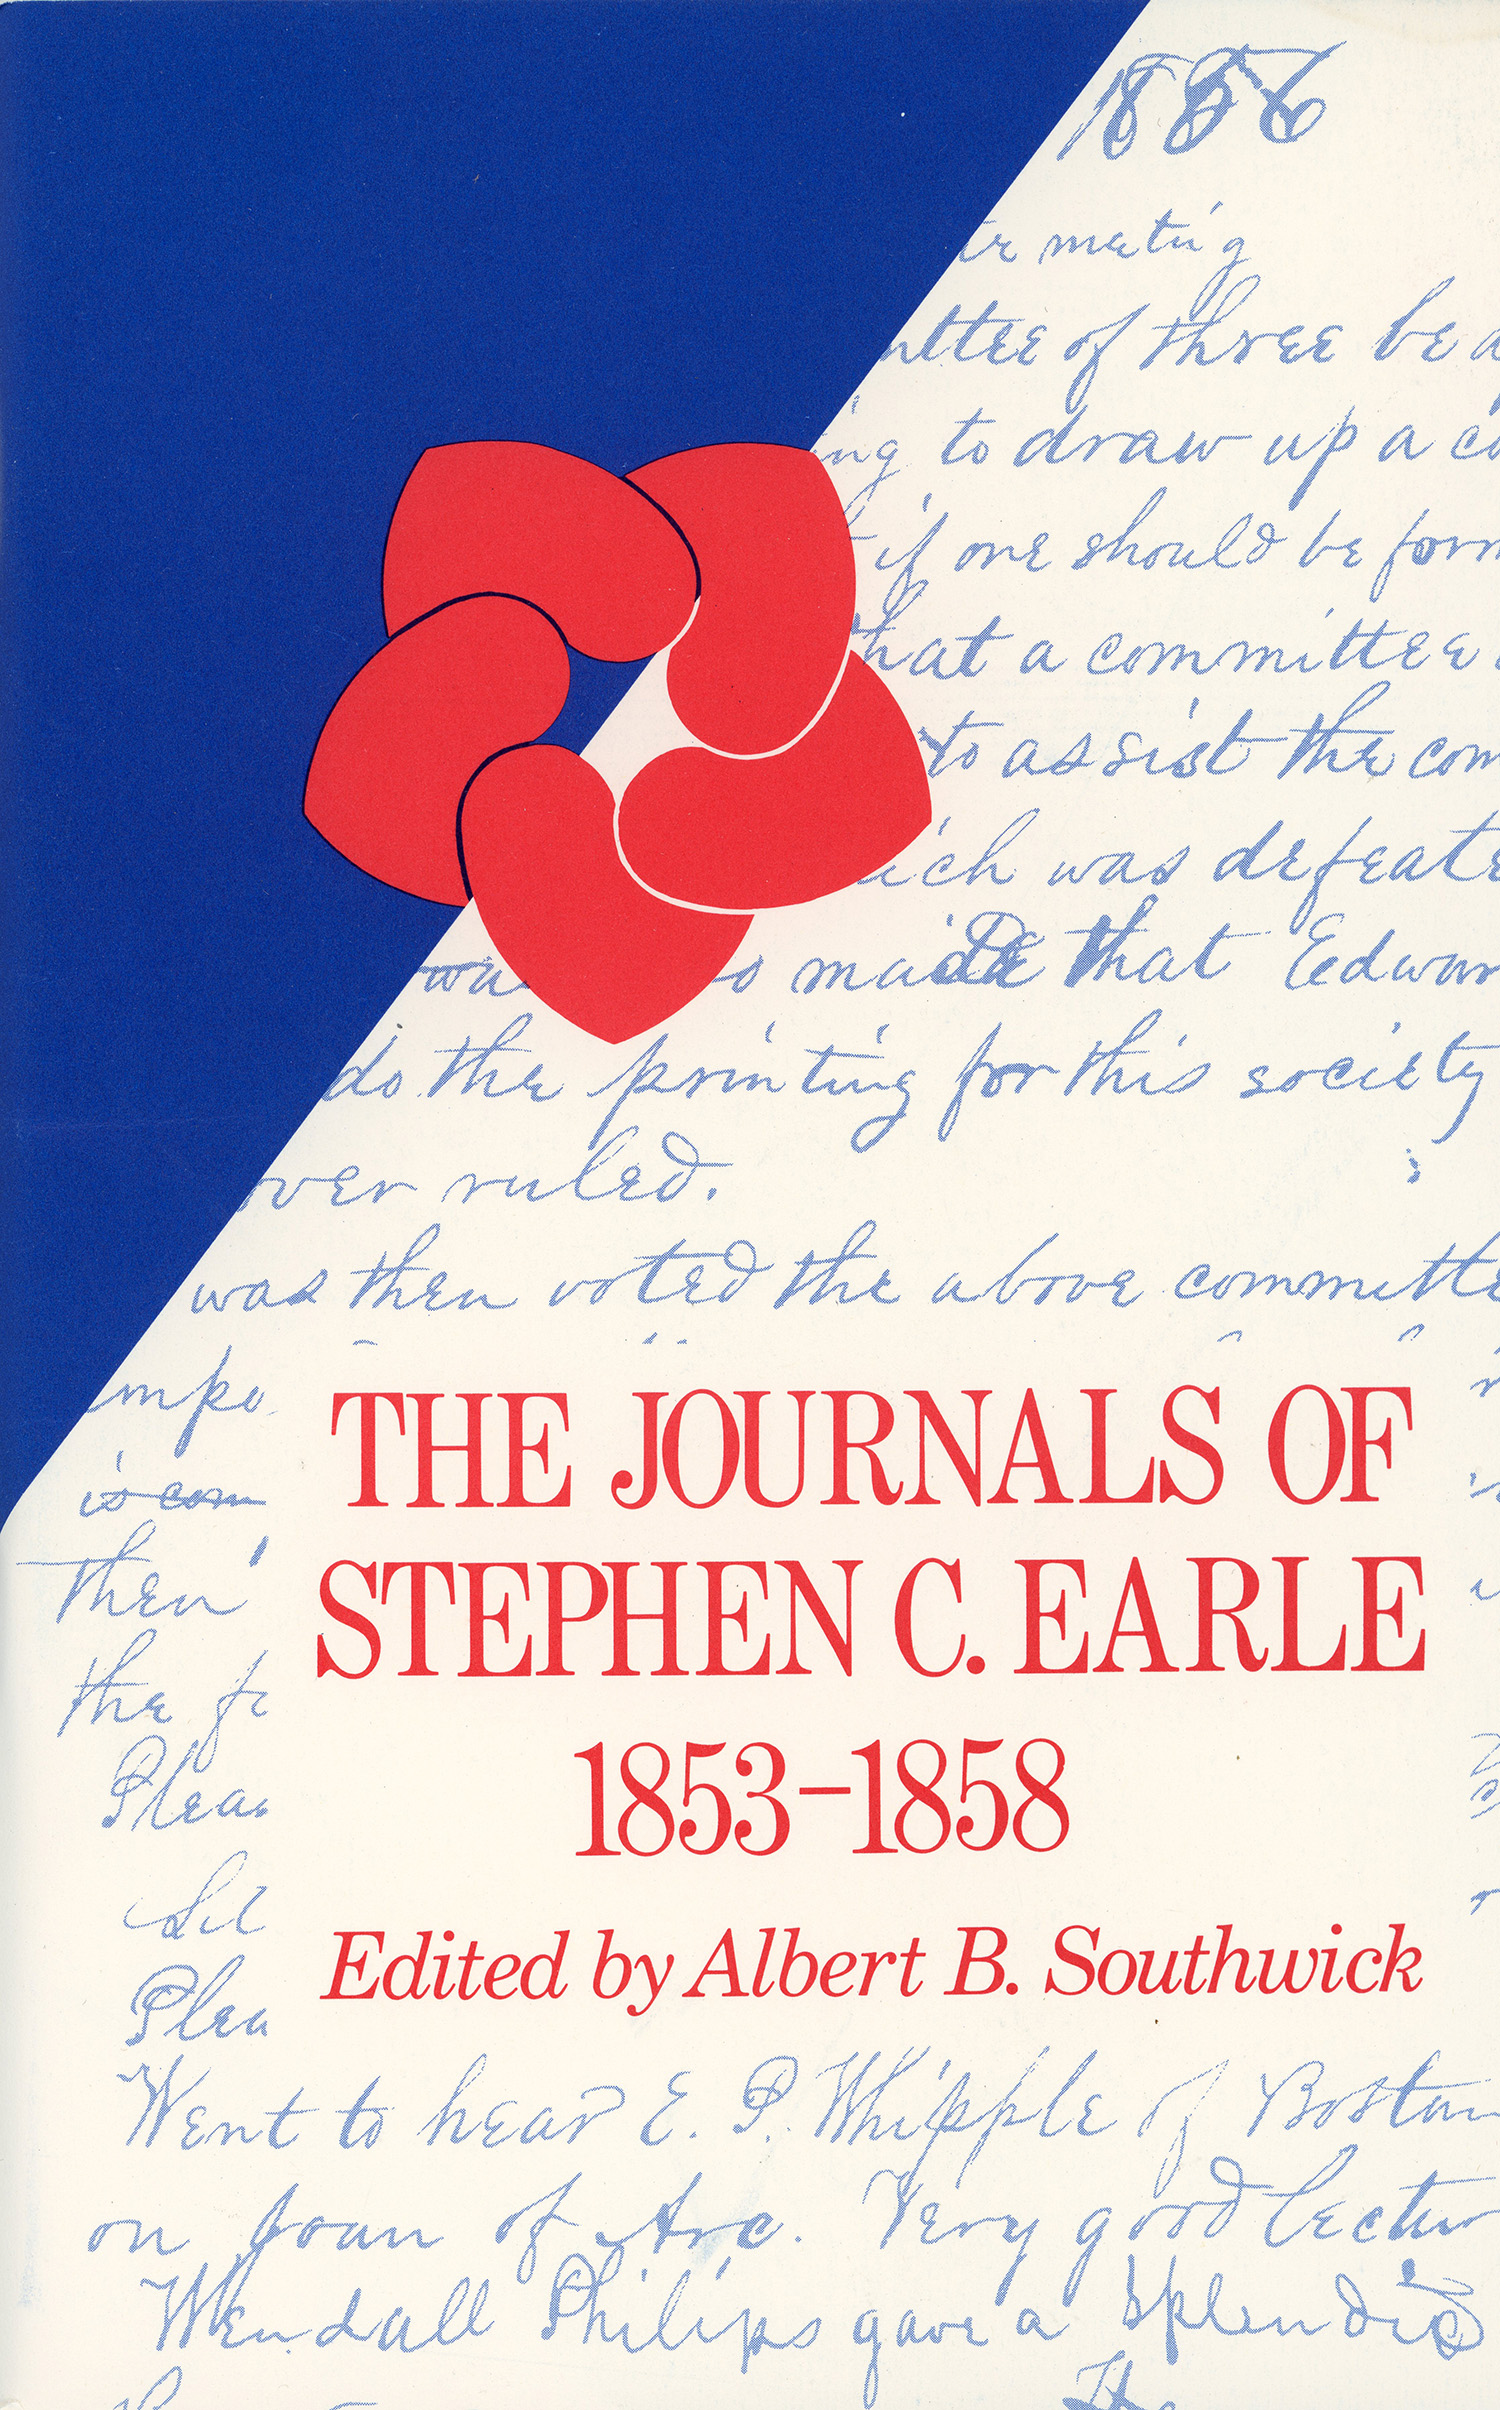 The Journals of Stephen C. Earle, edited by Albert Southwick